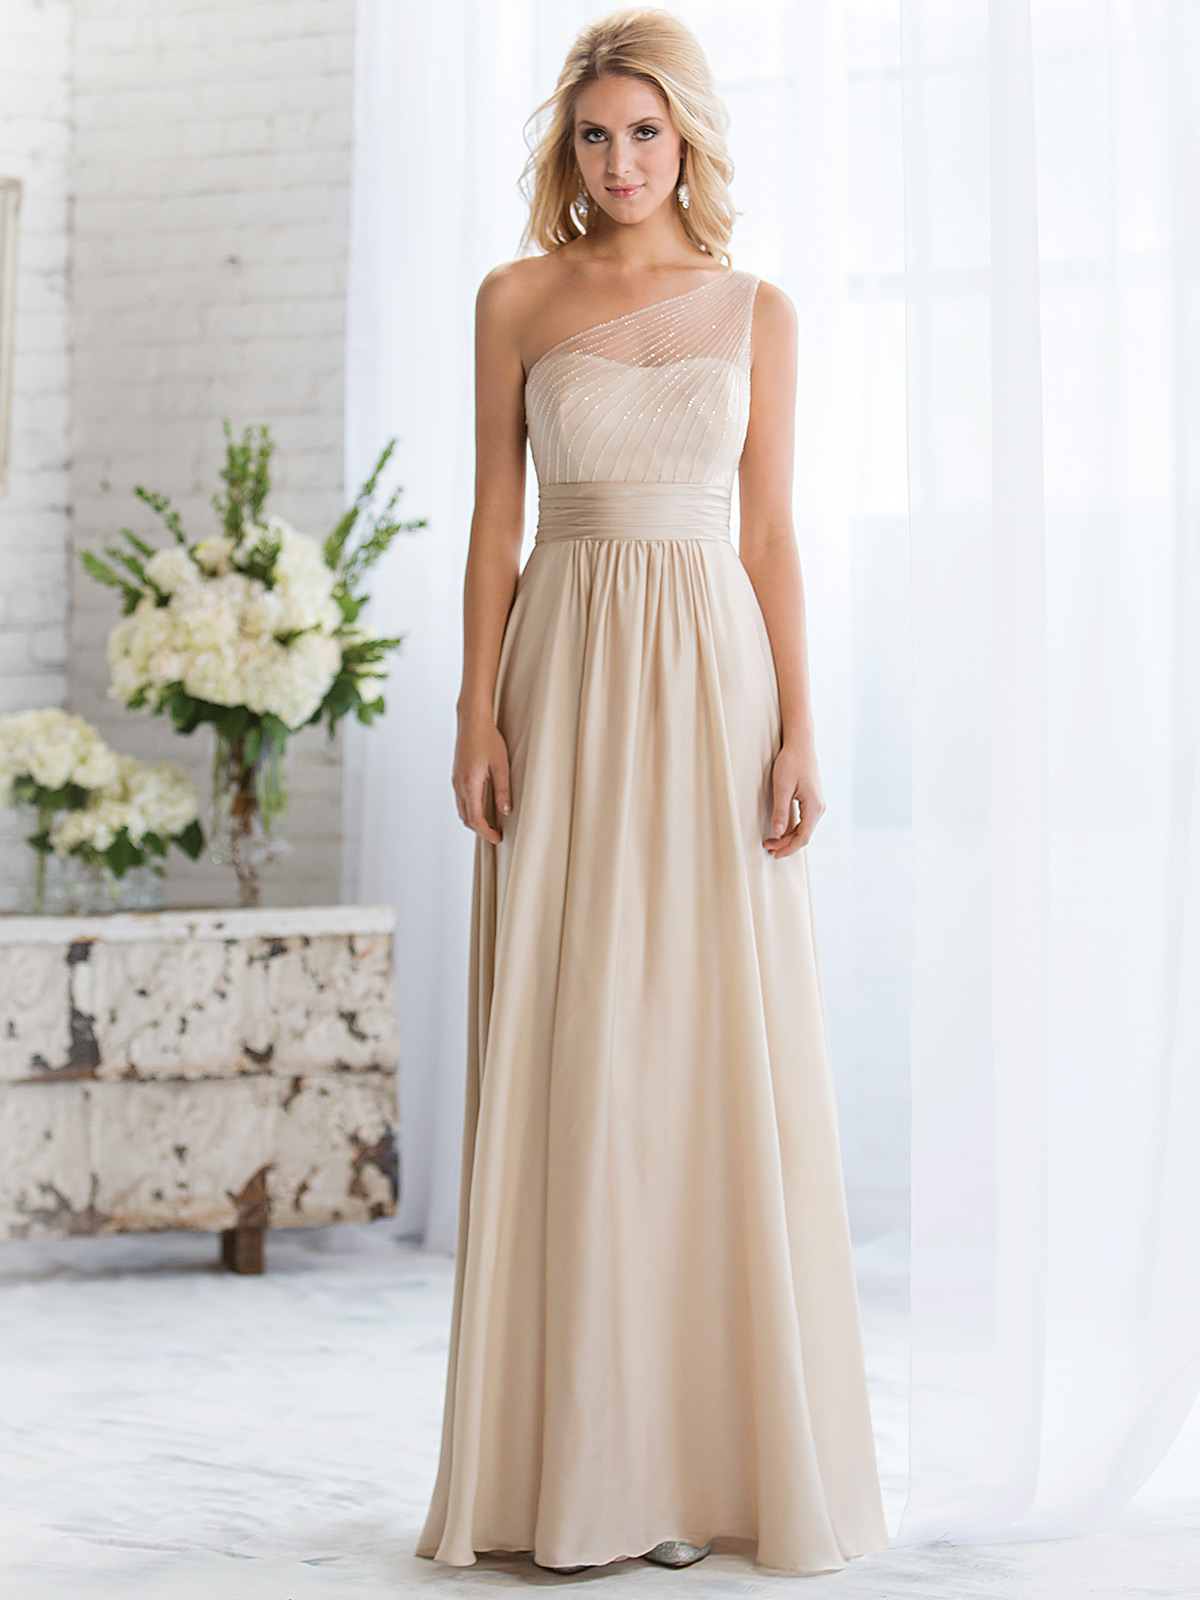 Belsoie bridesmaid dress l164056 for Dresses for wedding bridesmaid